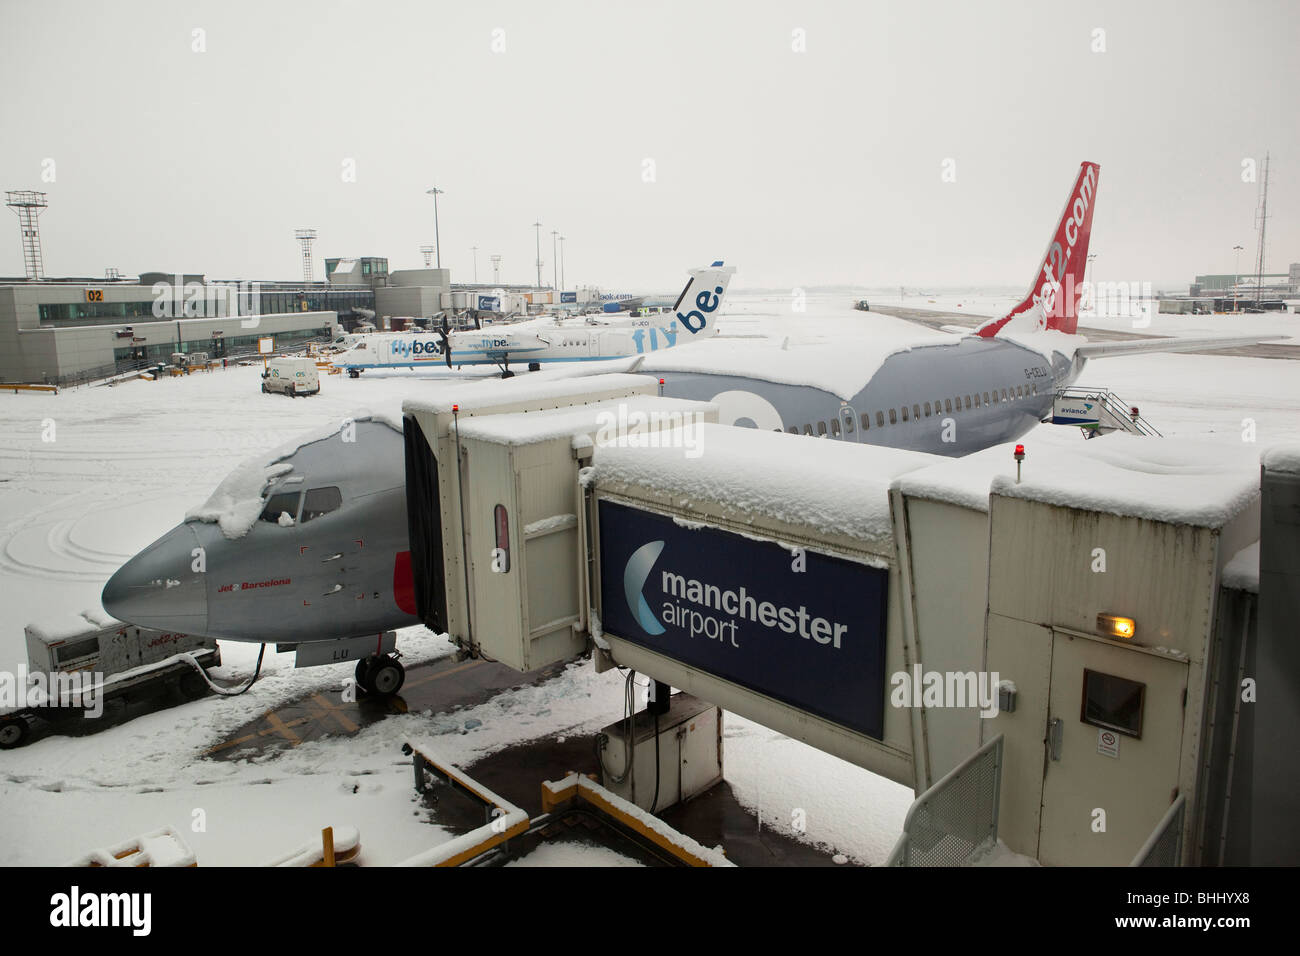 UK, England, Manchester Airport, snowed in jet 2 aircraft after heavy snowfall - Stock Image